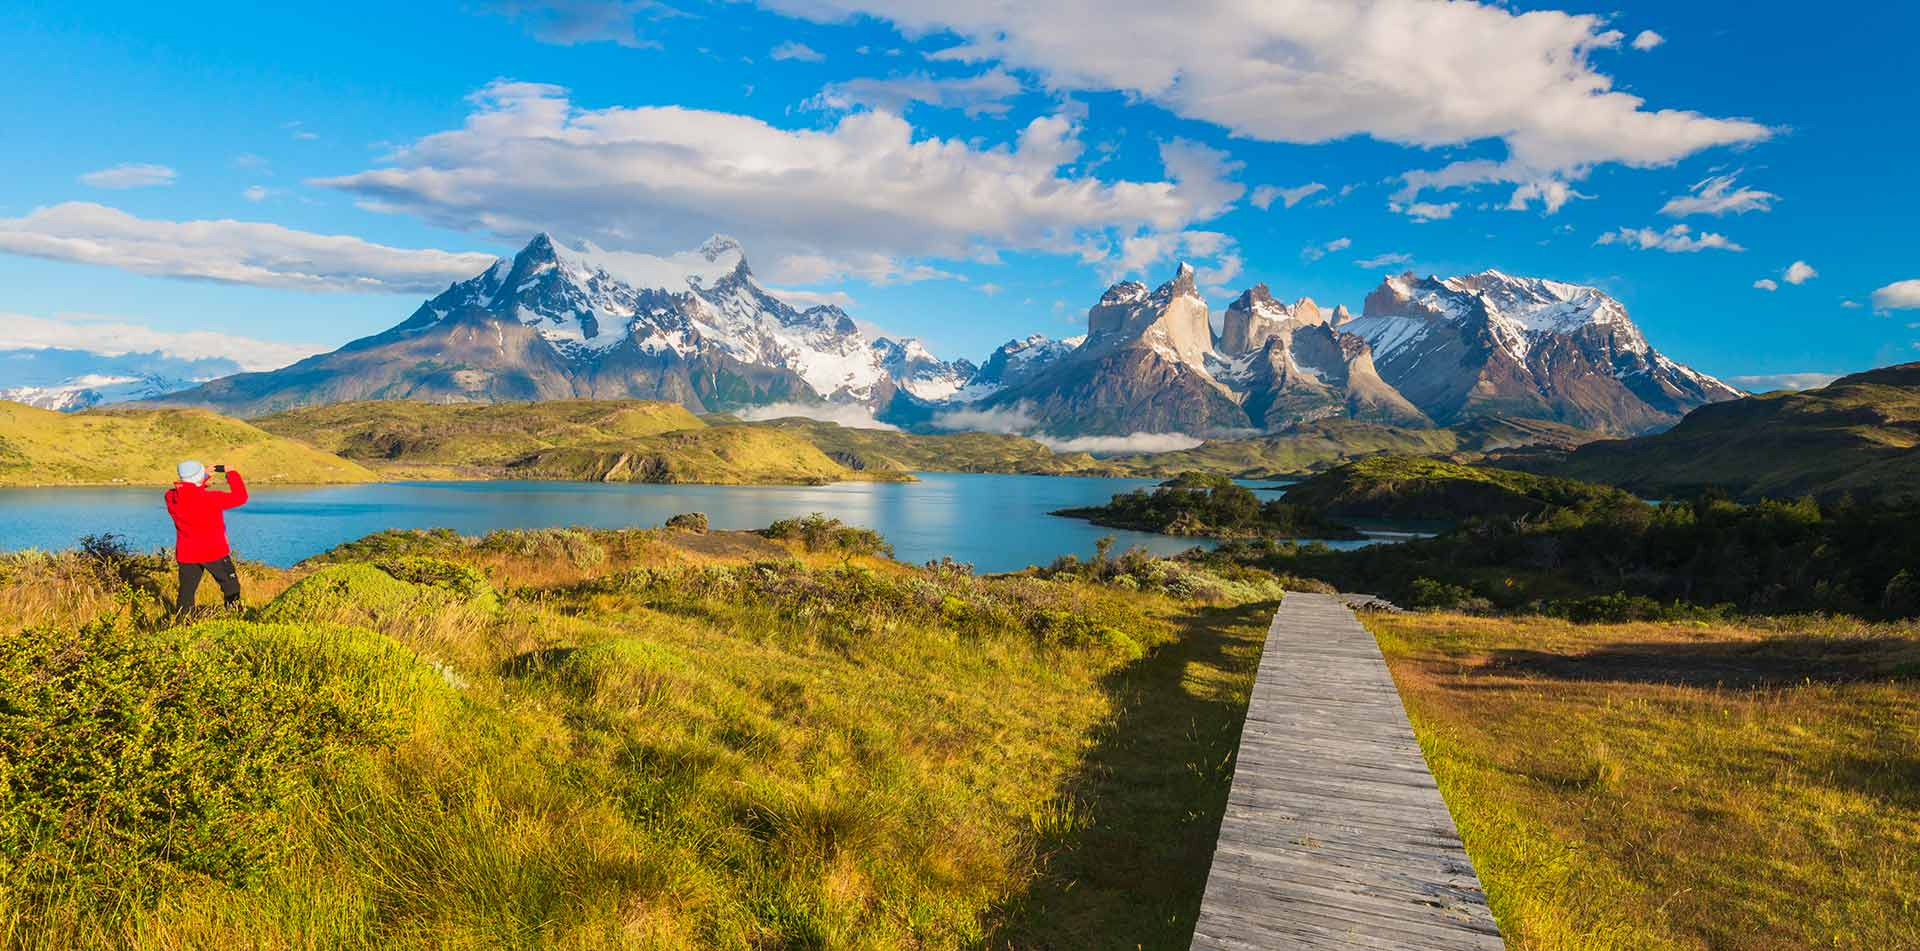 South America Chile Blue Lake Beautiful View Scenic Hike - luxury vacation destinations